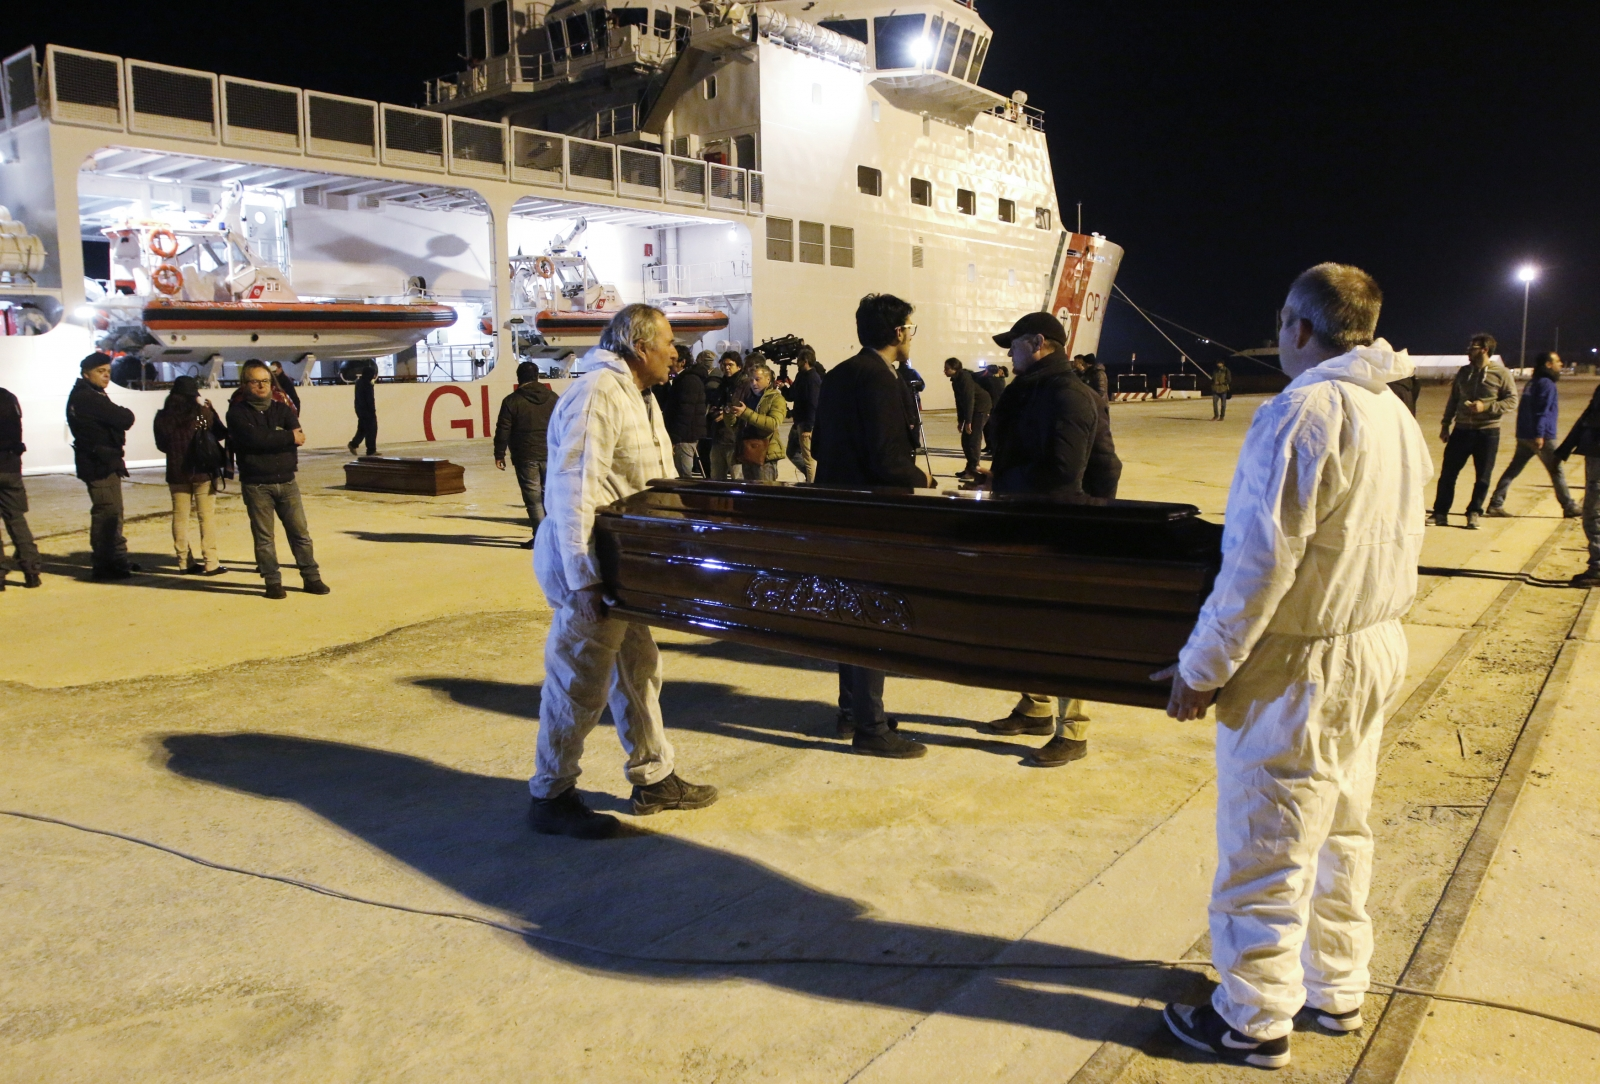 Mediterranean migrants drown